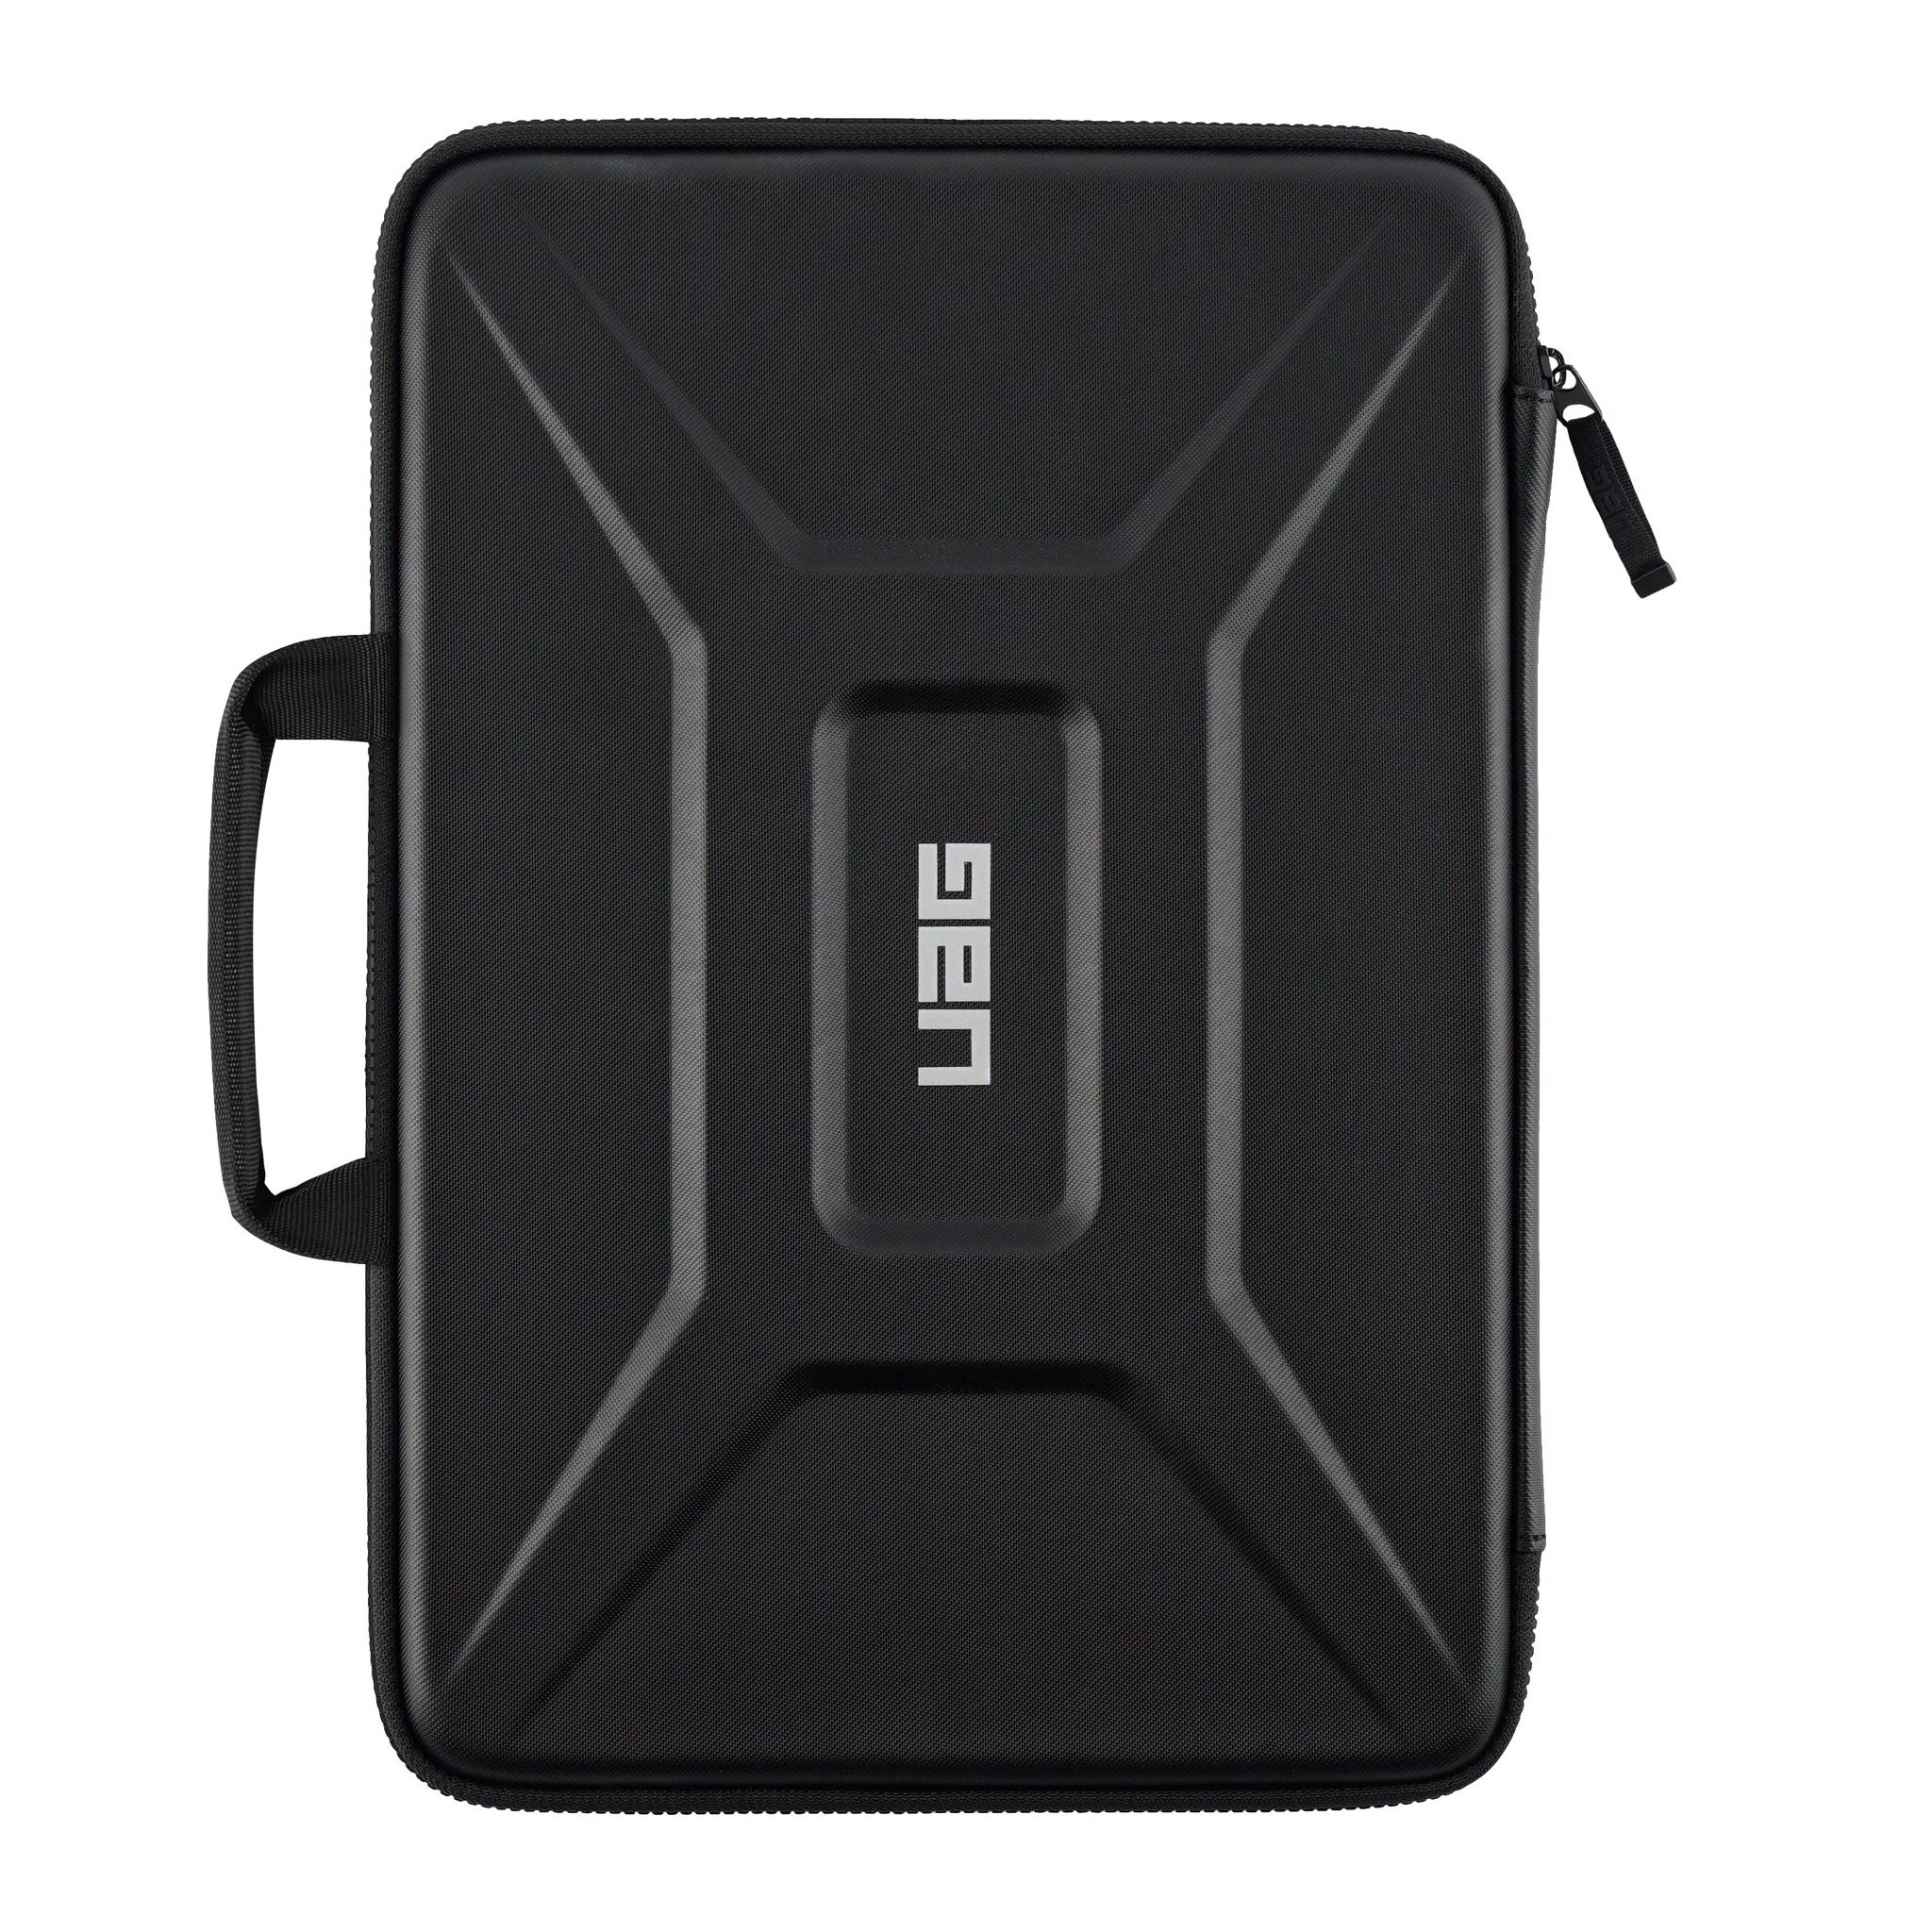 Túi chống sốc UAG Large Sleeve with Handle Fall 15.6 inch